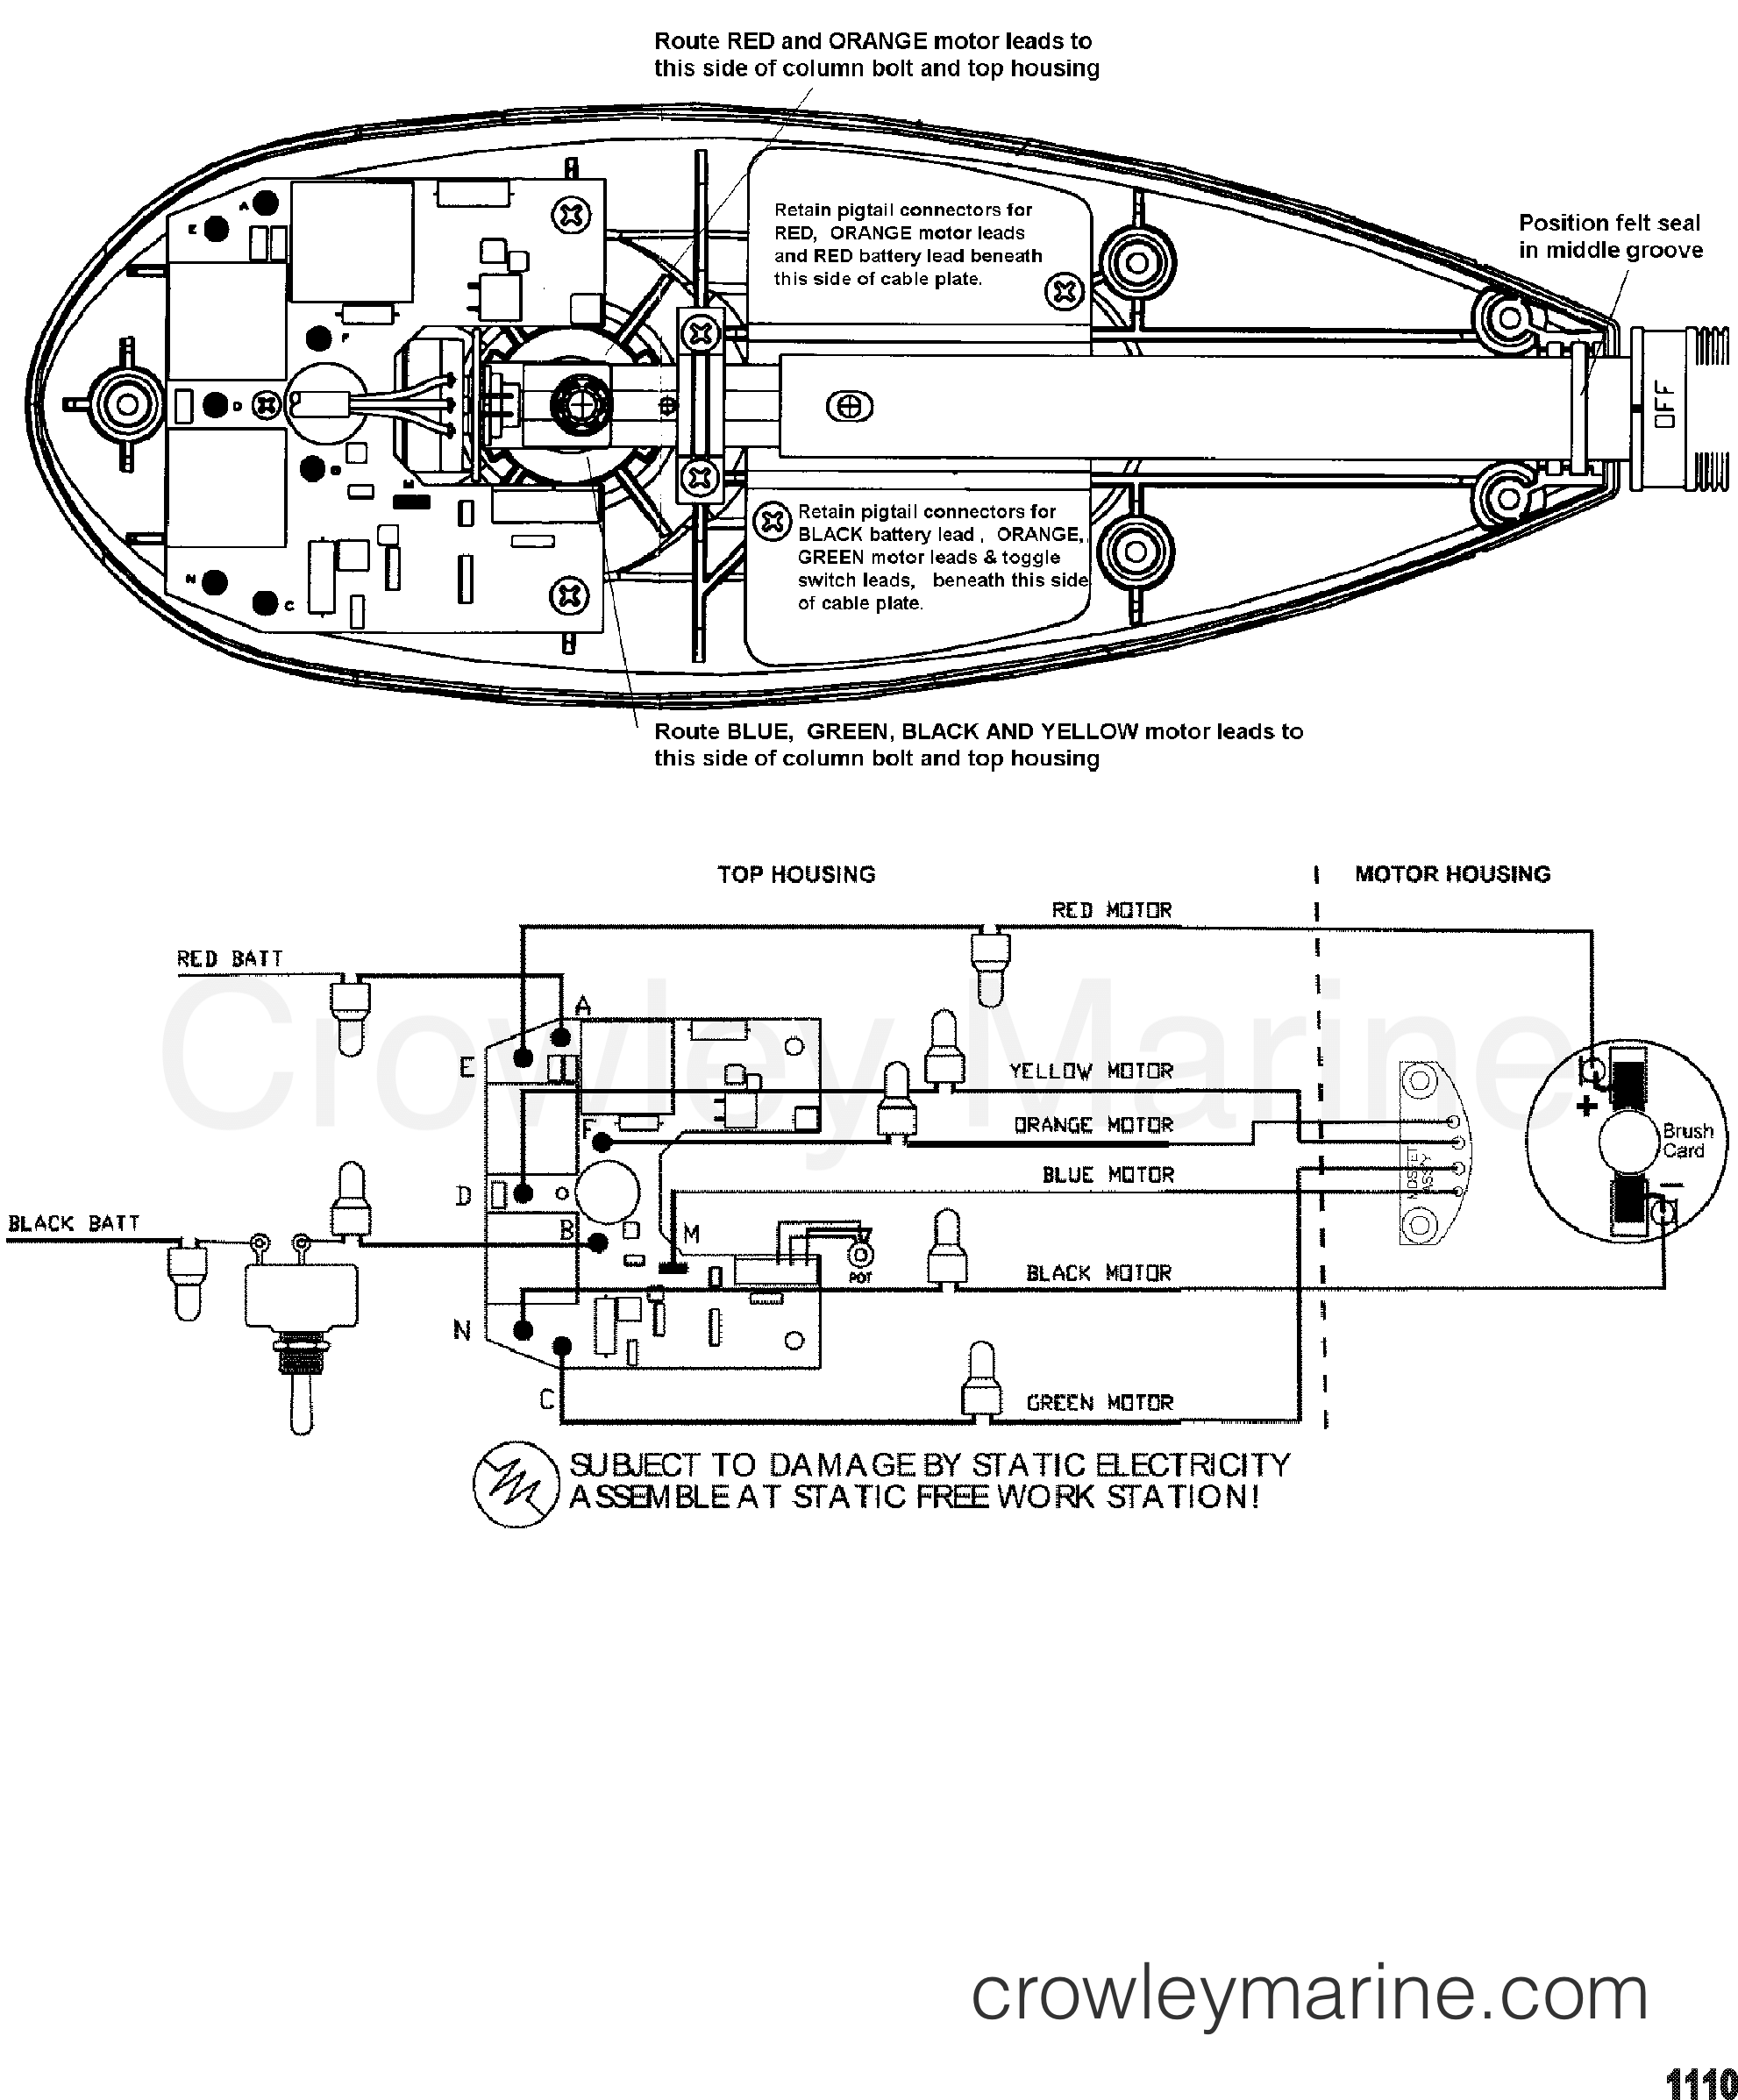 2002 MotorGuide 12V [MOTORGUIDE] - 9EF45BAZJ - WIRE DIAGRAM(MODEL ET107V) (36 VOLT) section